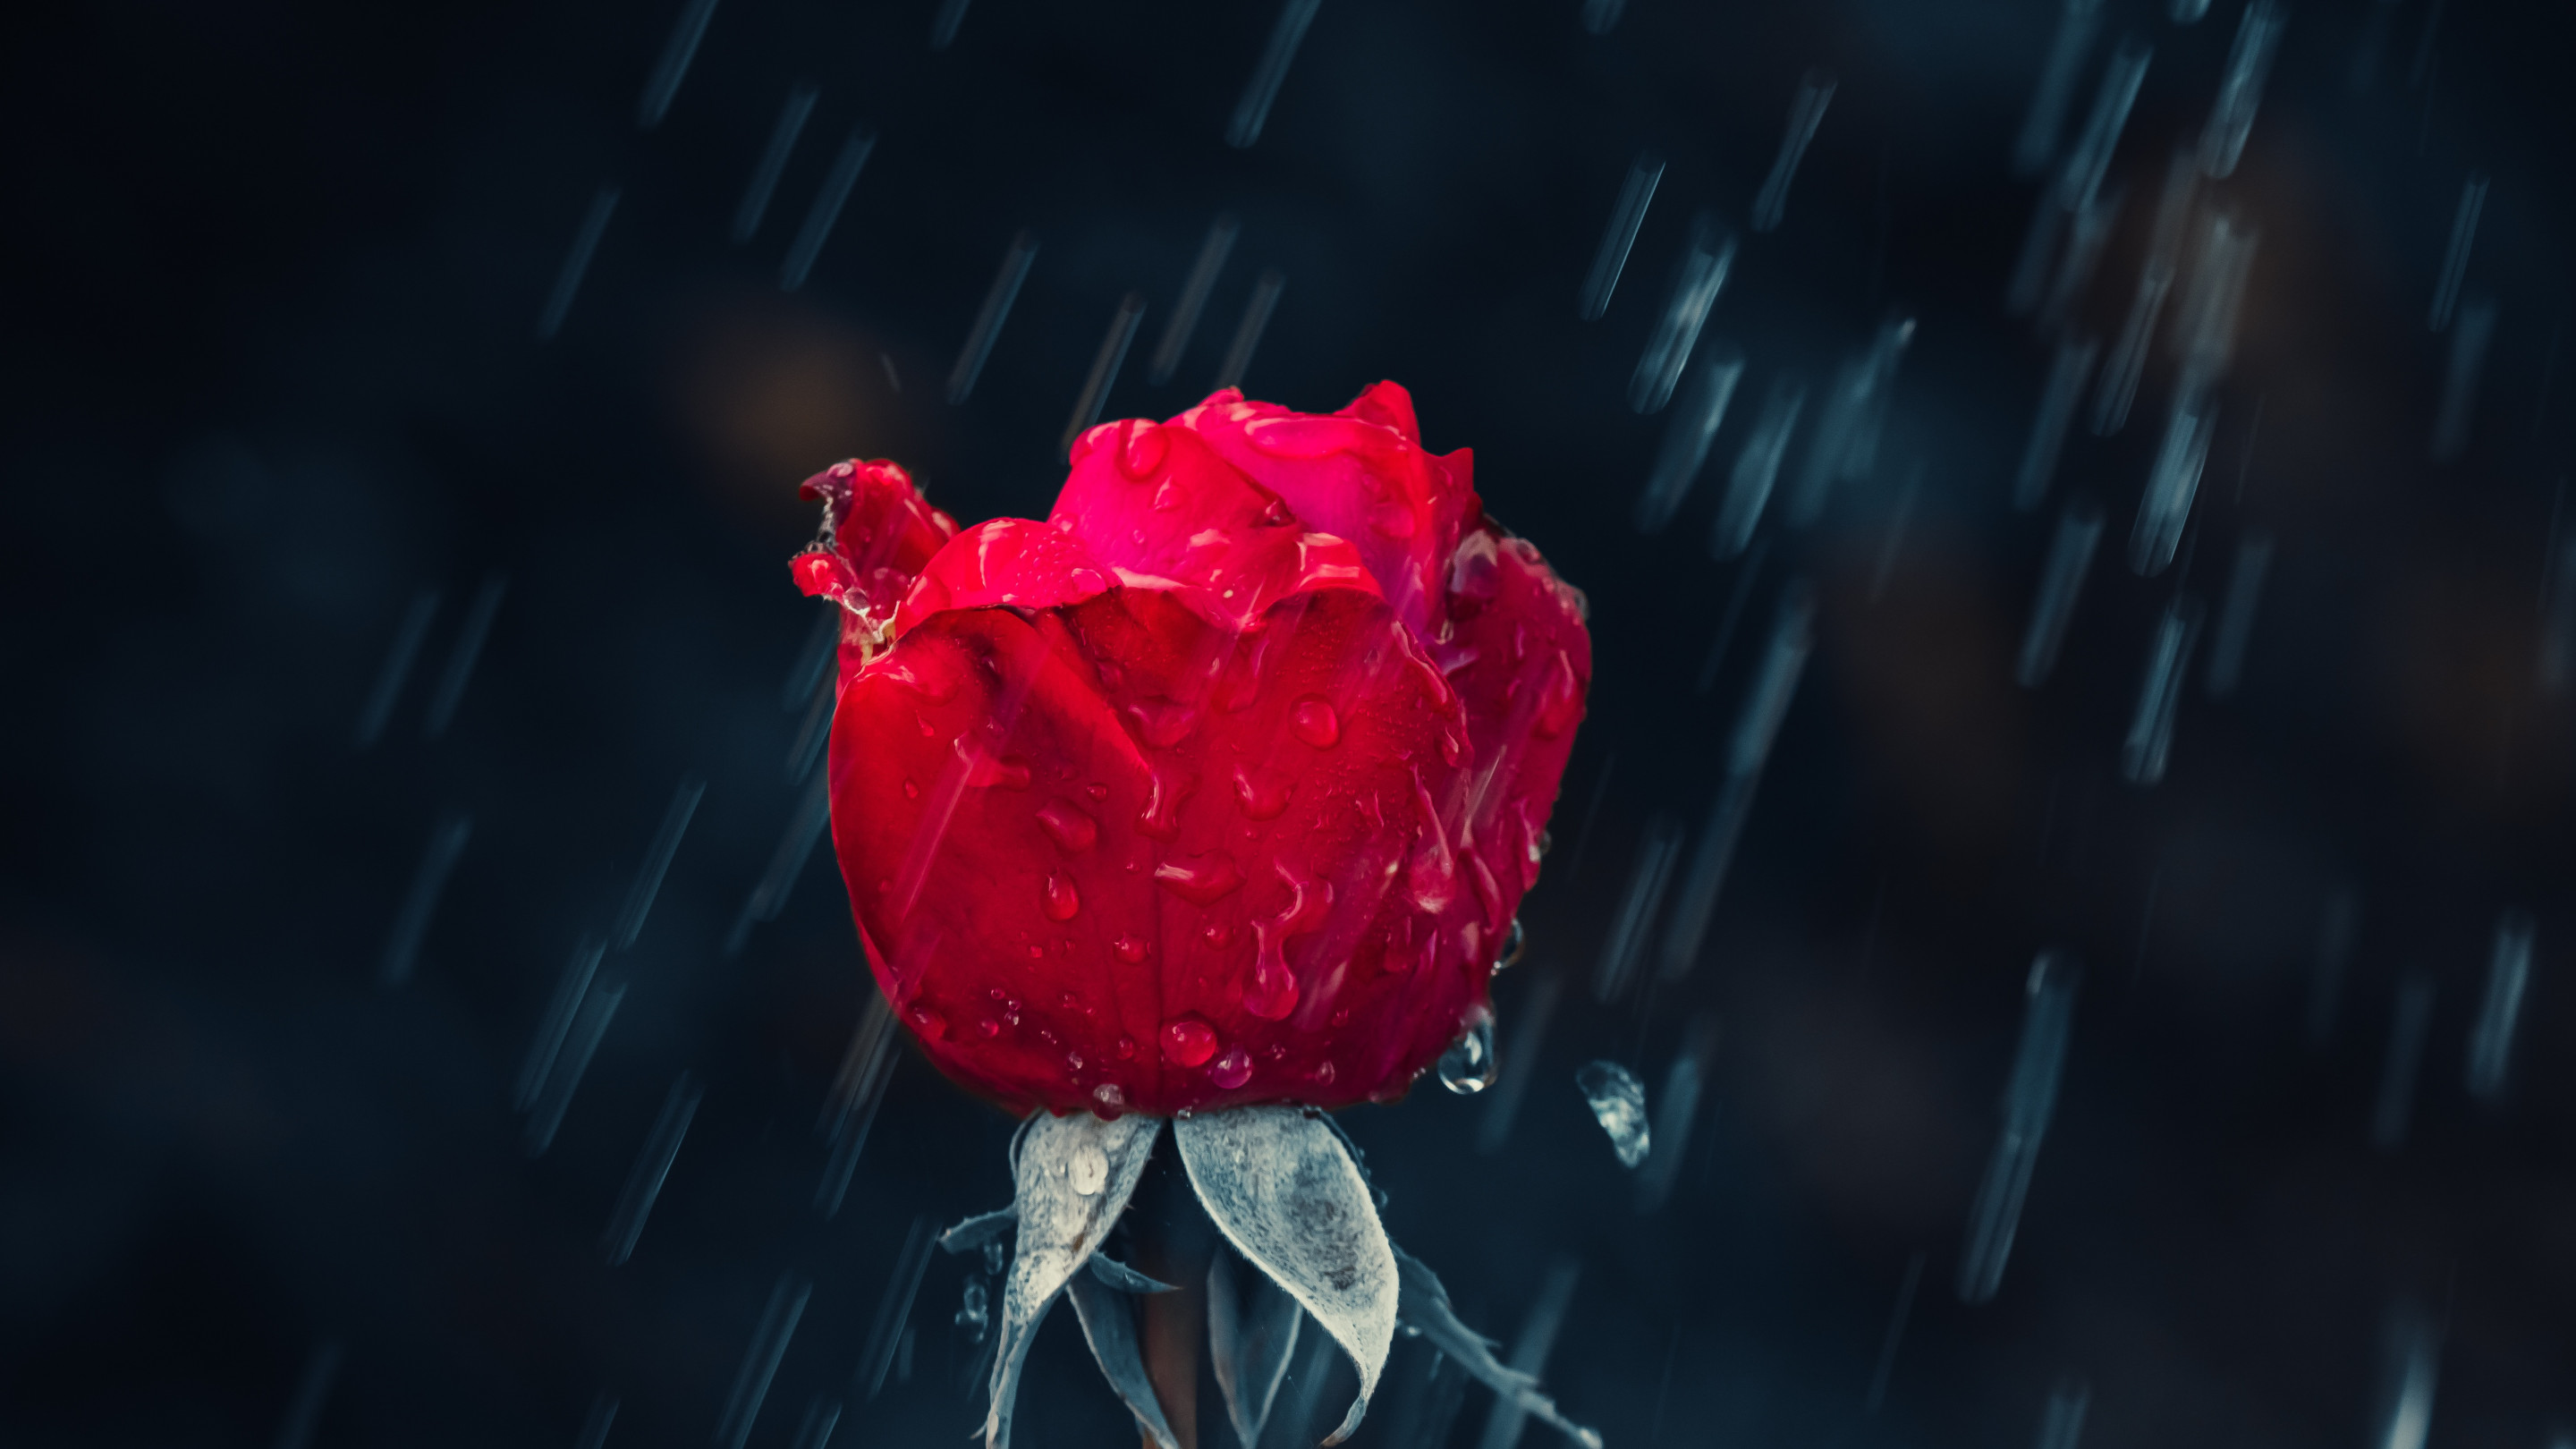 Red rose and raindrops wallpaper 2880x1620